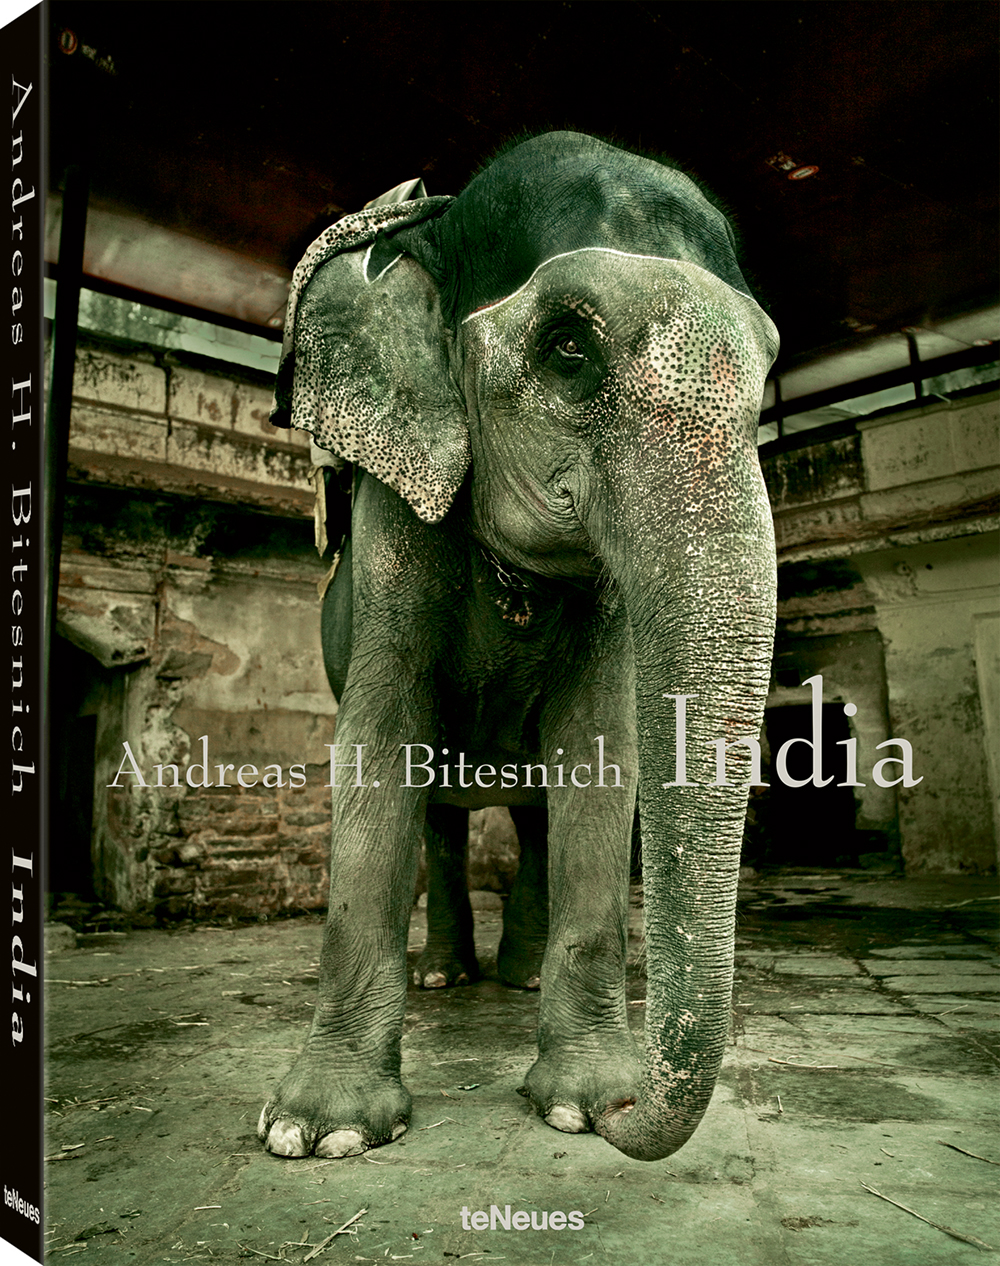 © India by Andreas H. Bitesnich, published by teNeues, $95, www.teneues.com